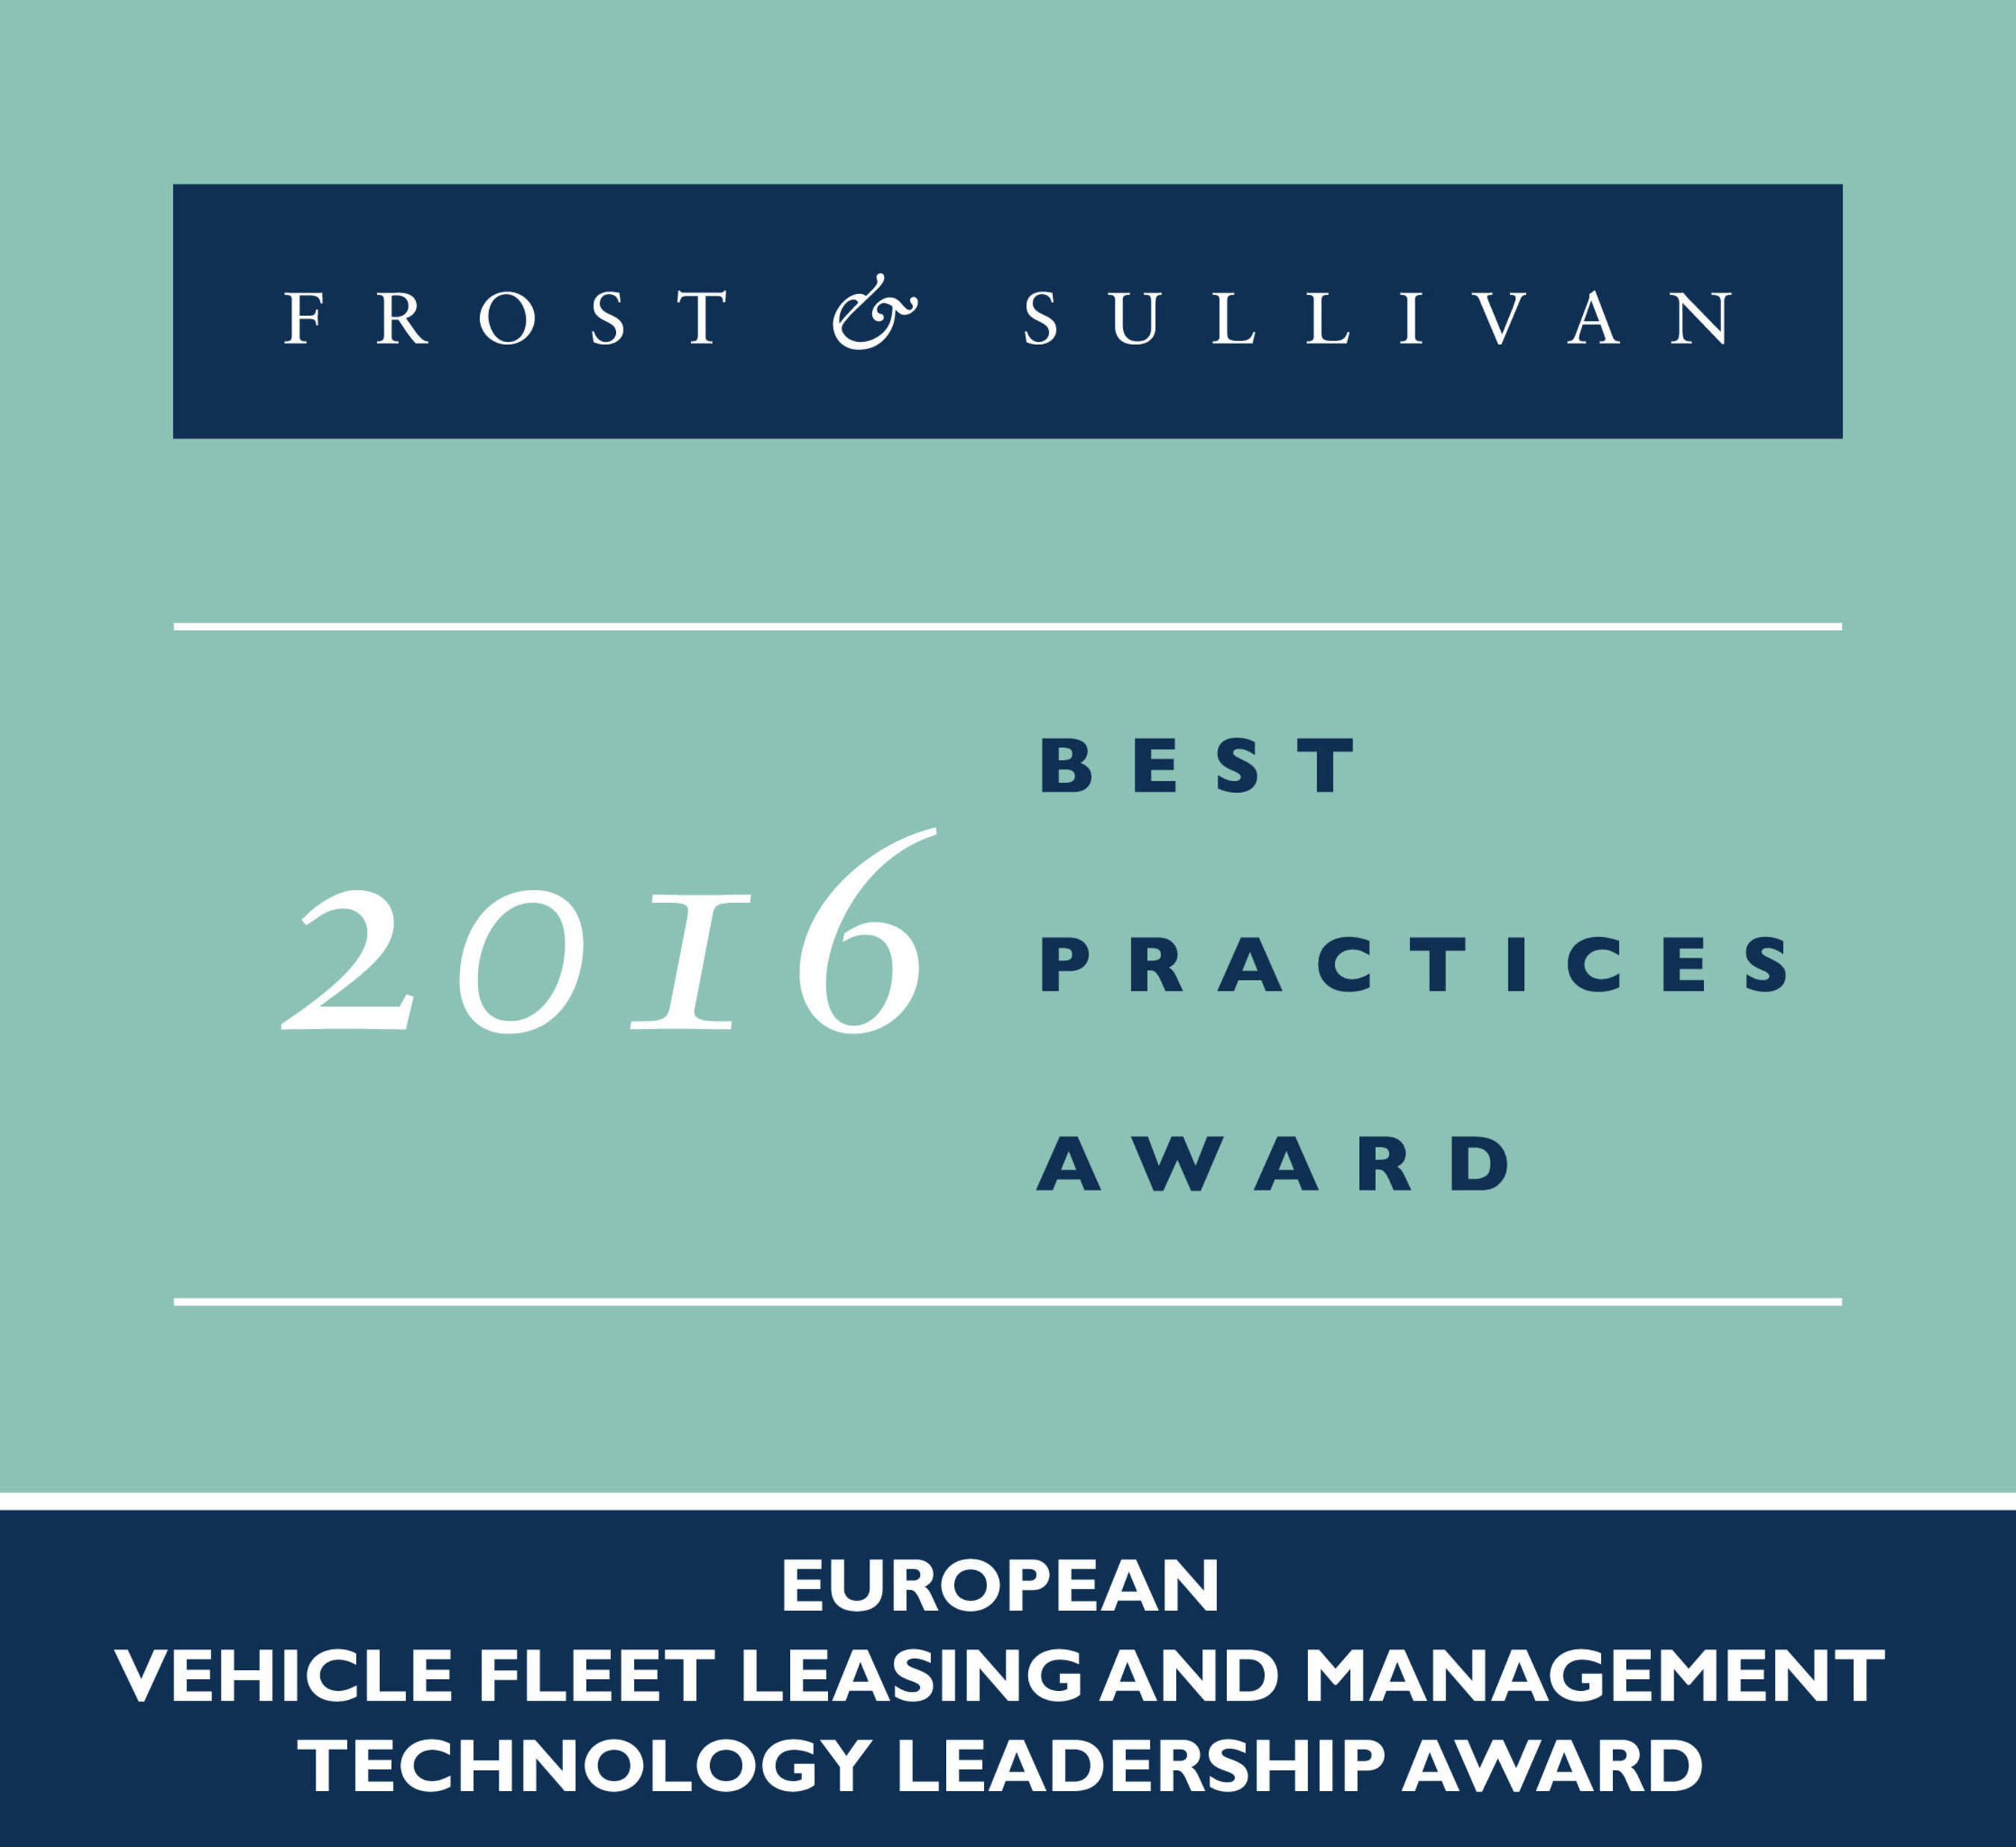 Carano Software Solutions Receives 2016 European Vehicle Fleet Leasing and Management Technology Leadership Award